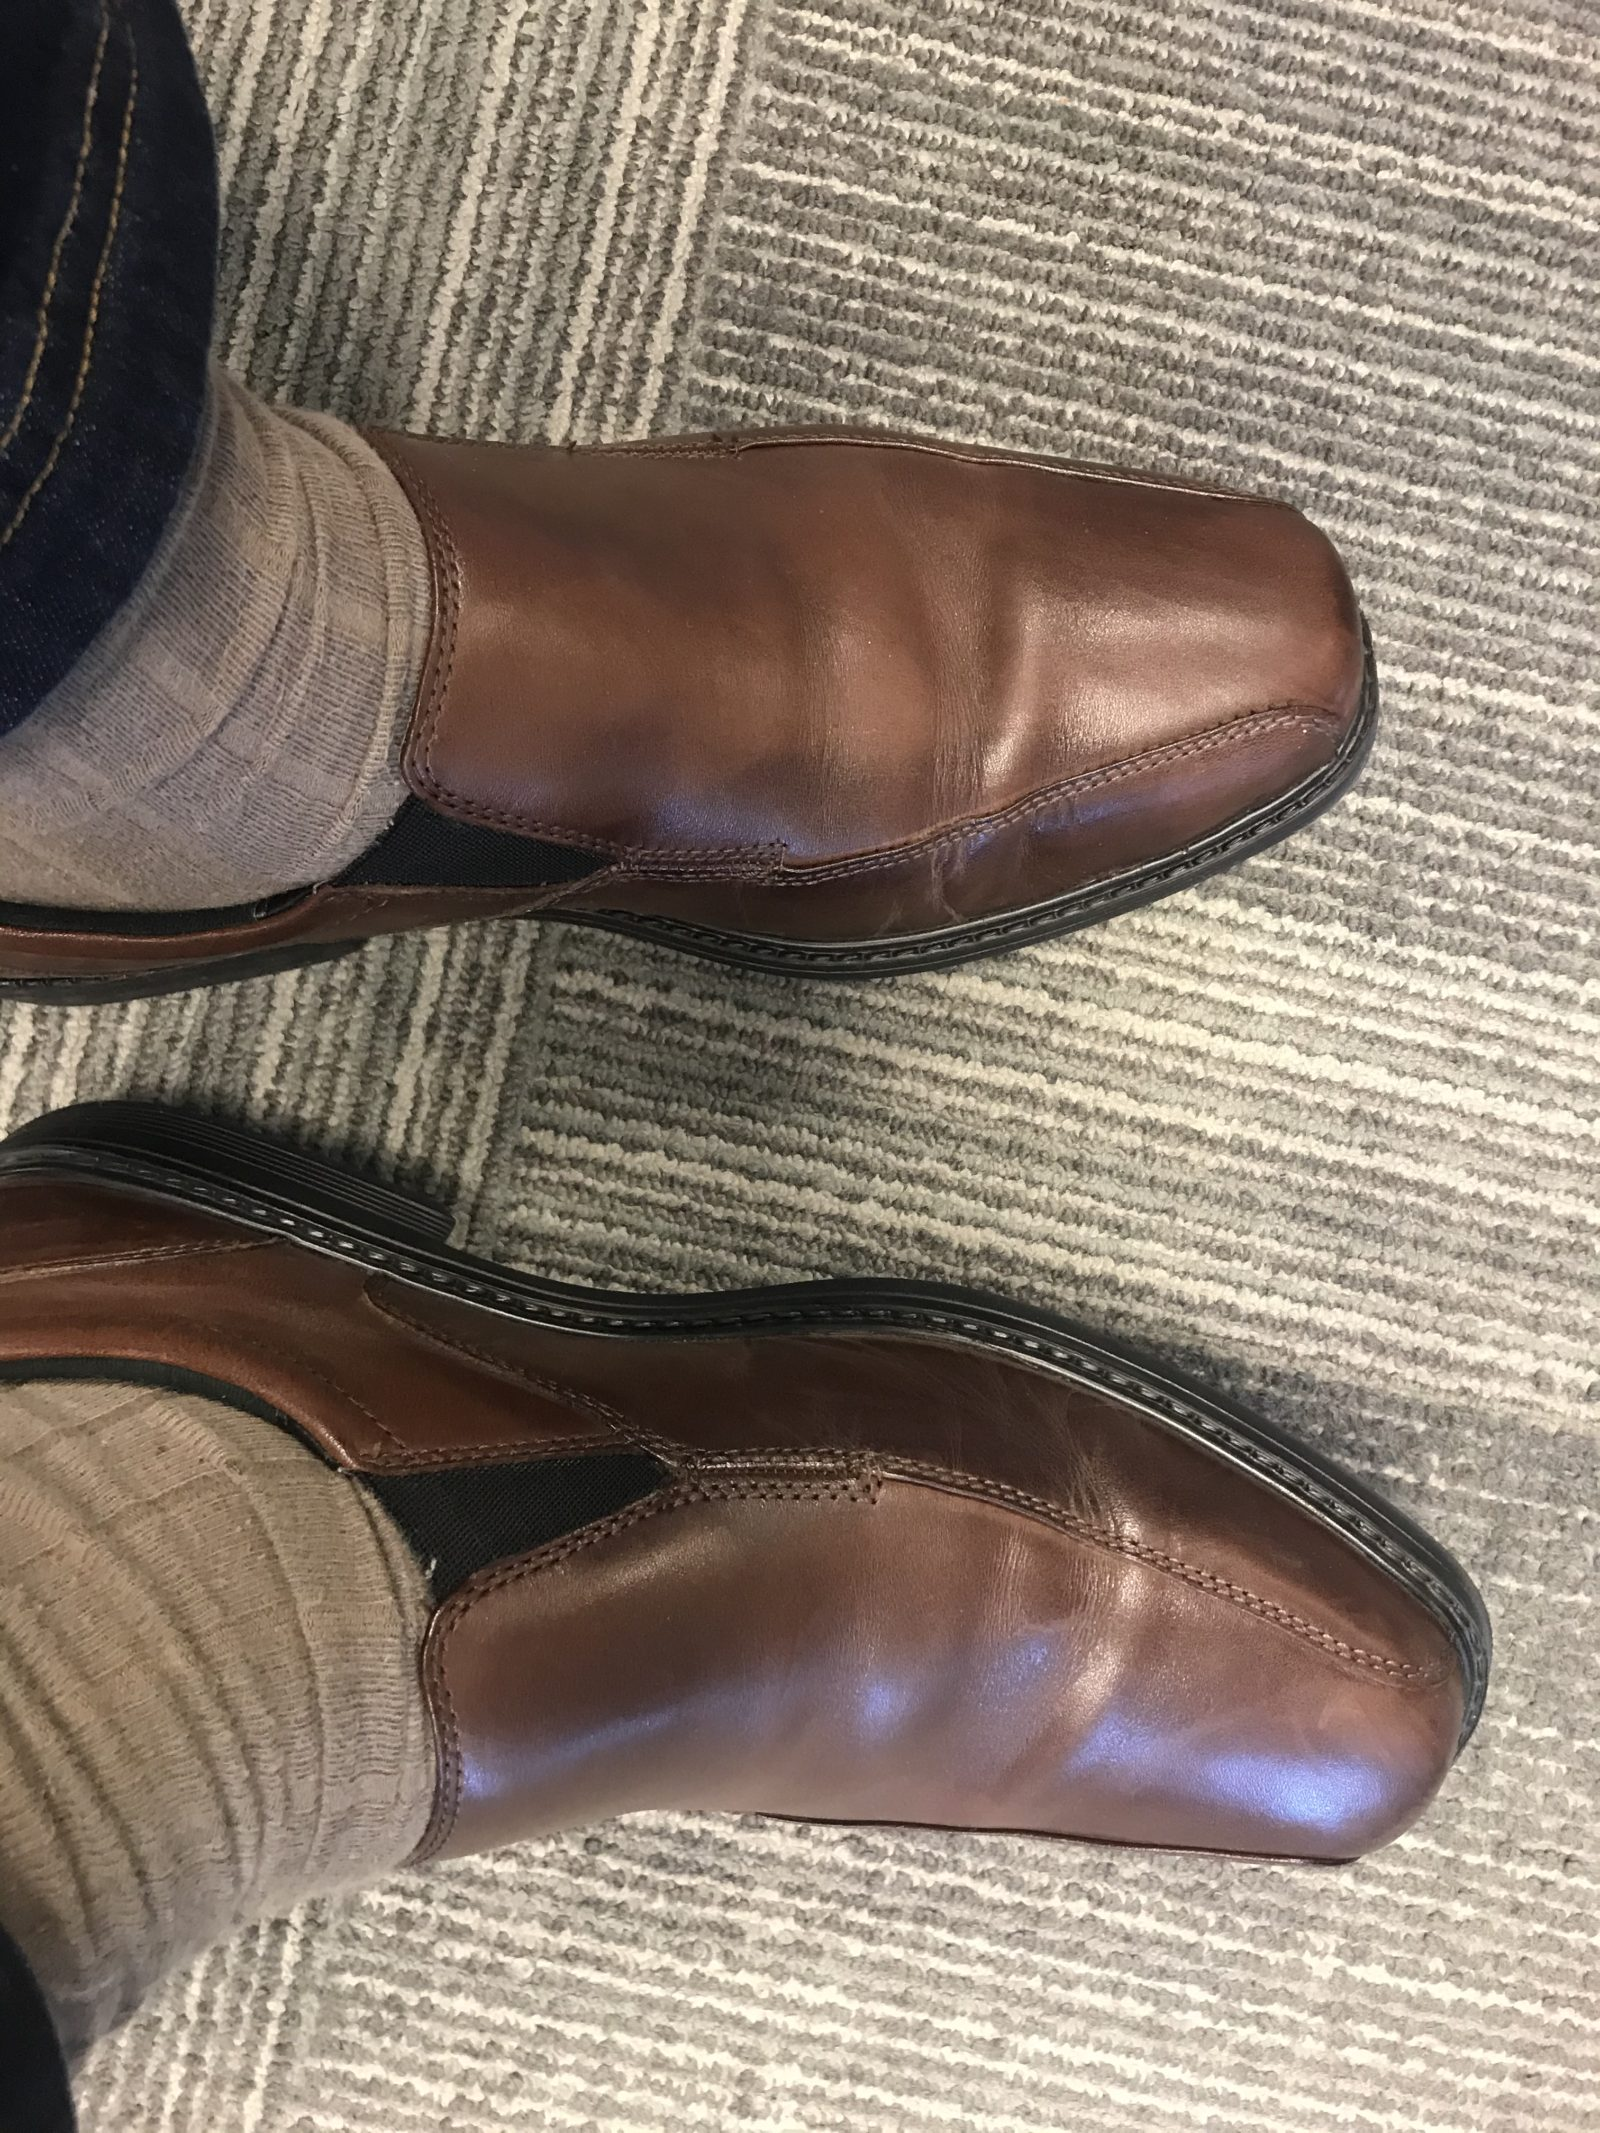 new brown dress shoes